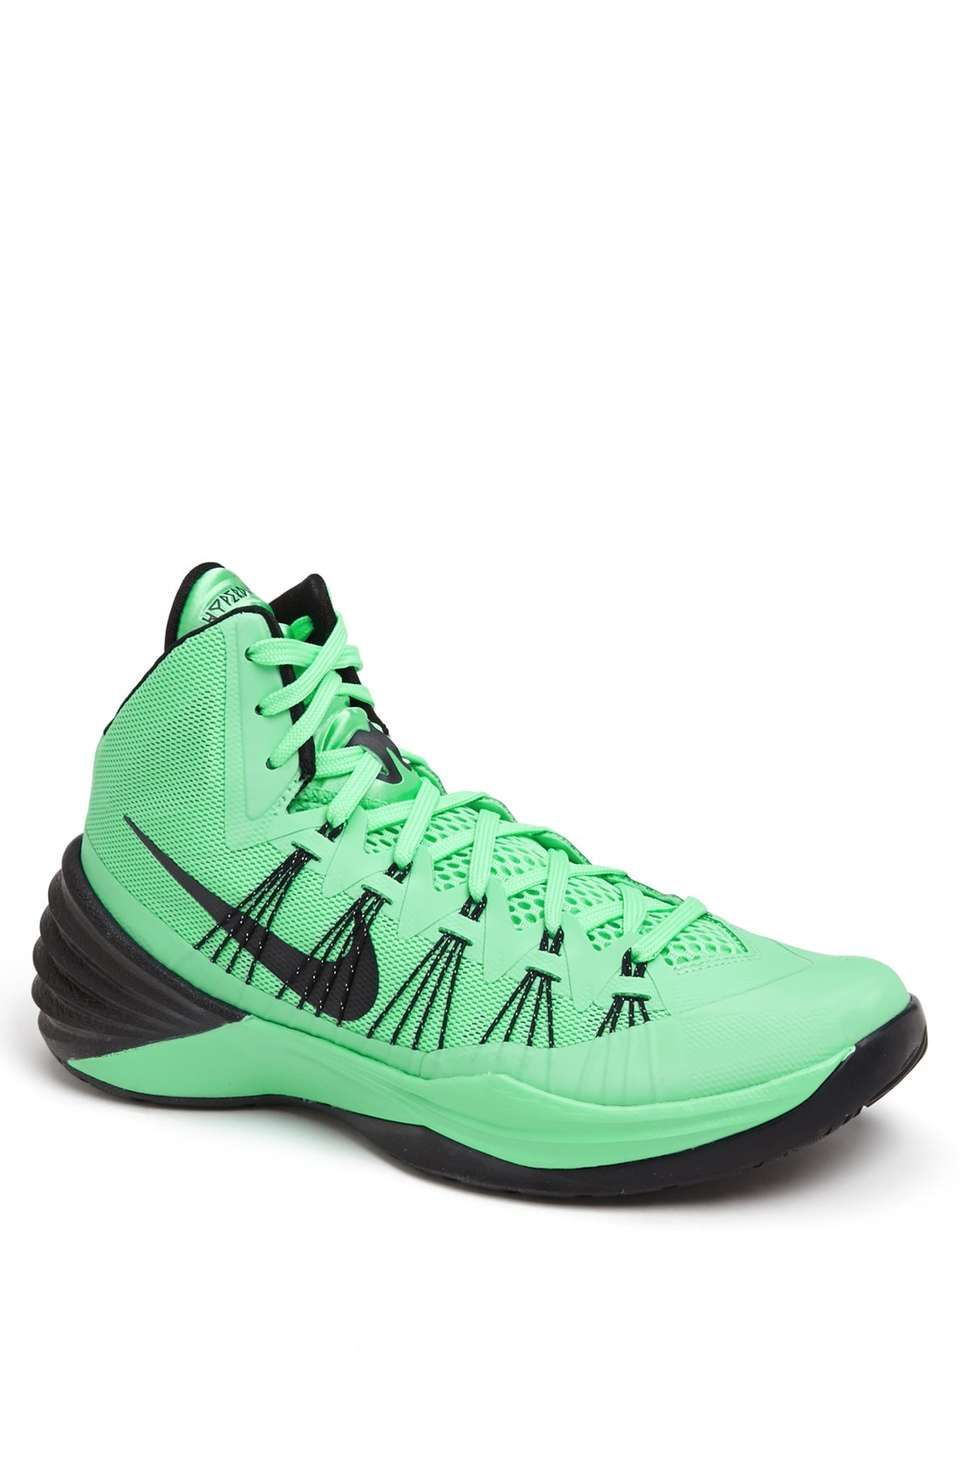 Nike \u0027Hyperdunk 2013\u0027 Basketball Shoe (Men) | $140 | gifts for the